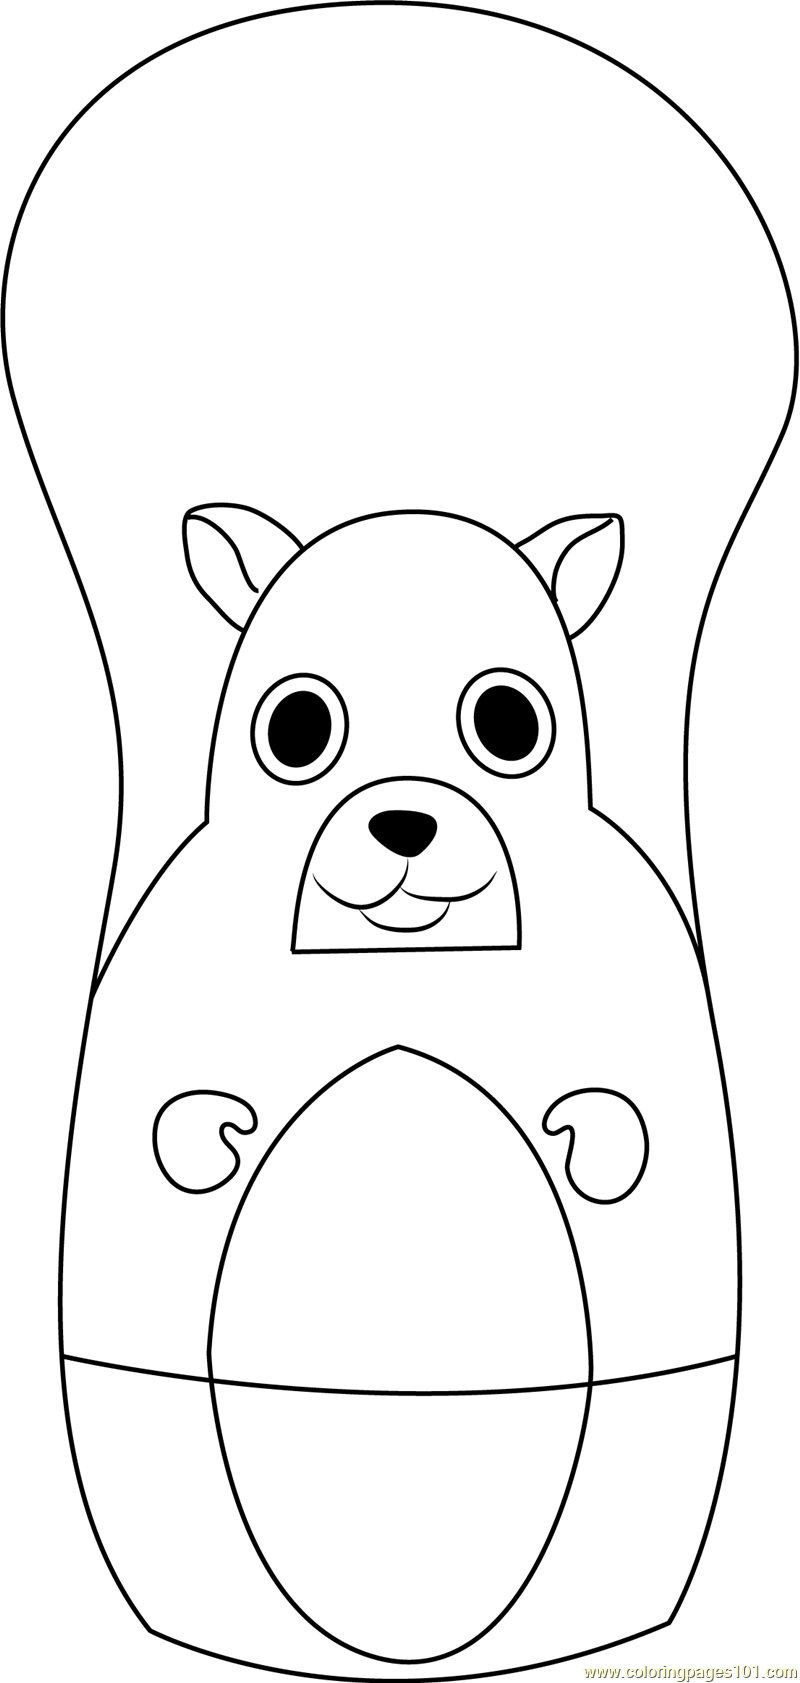 Higglytown heroes sitting coloring page free higglytown for Higglytown heroes coloring pages